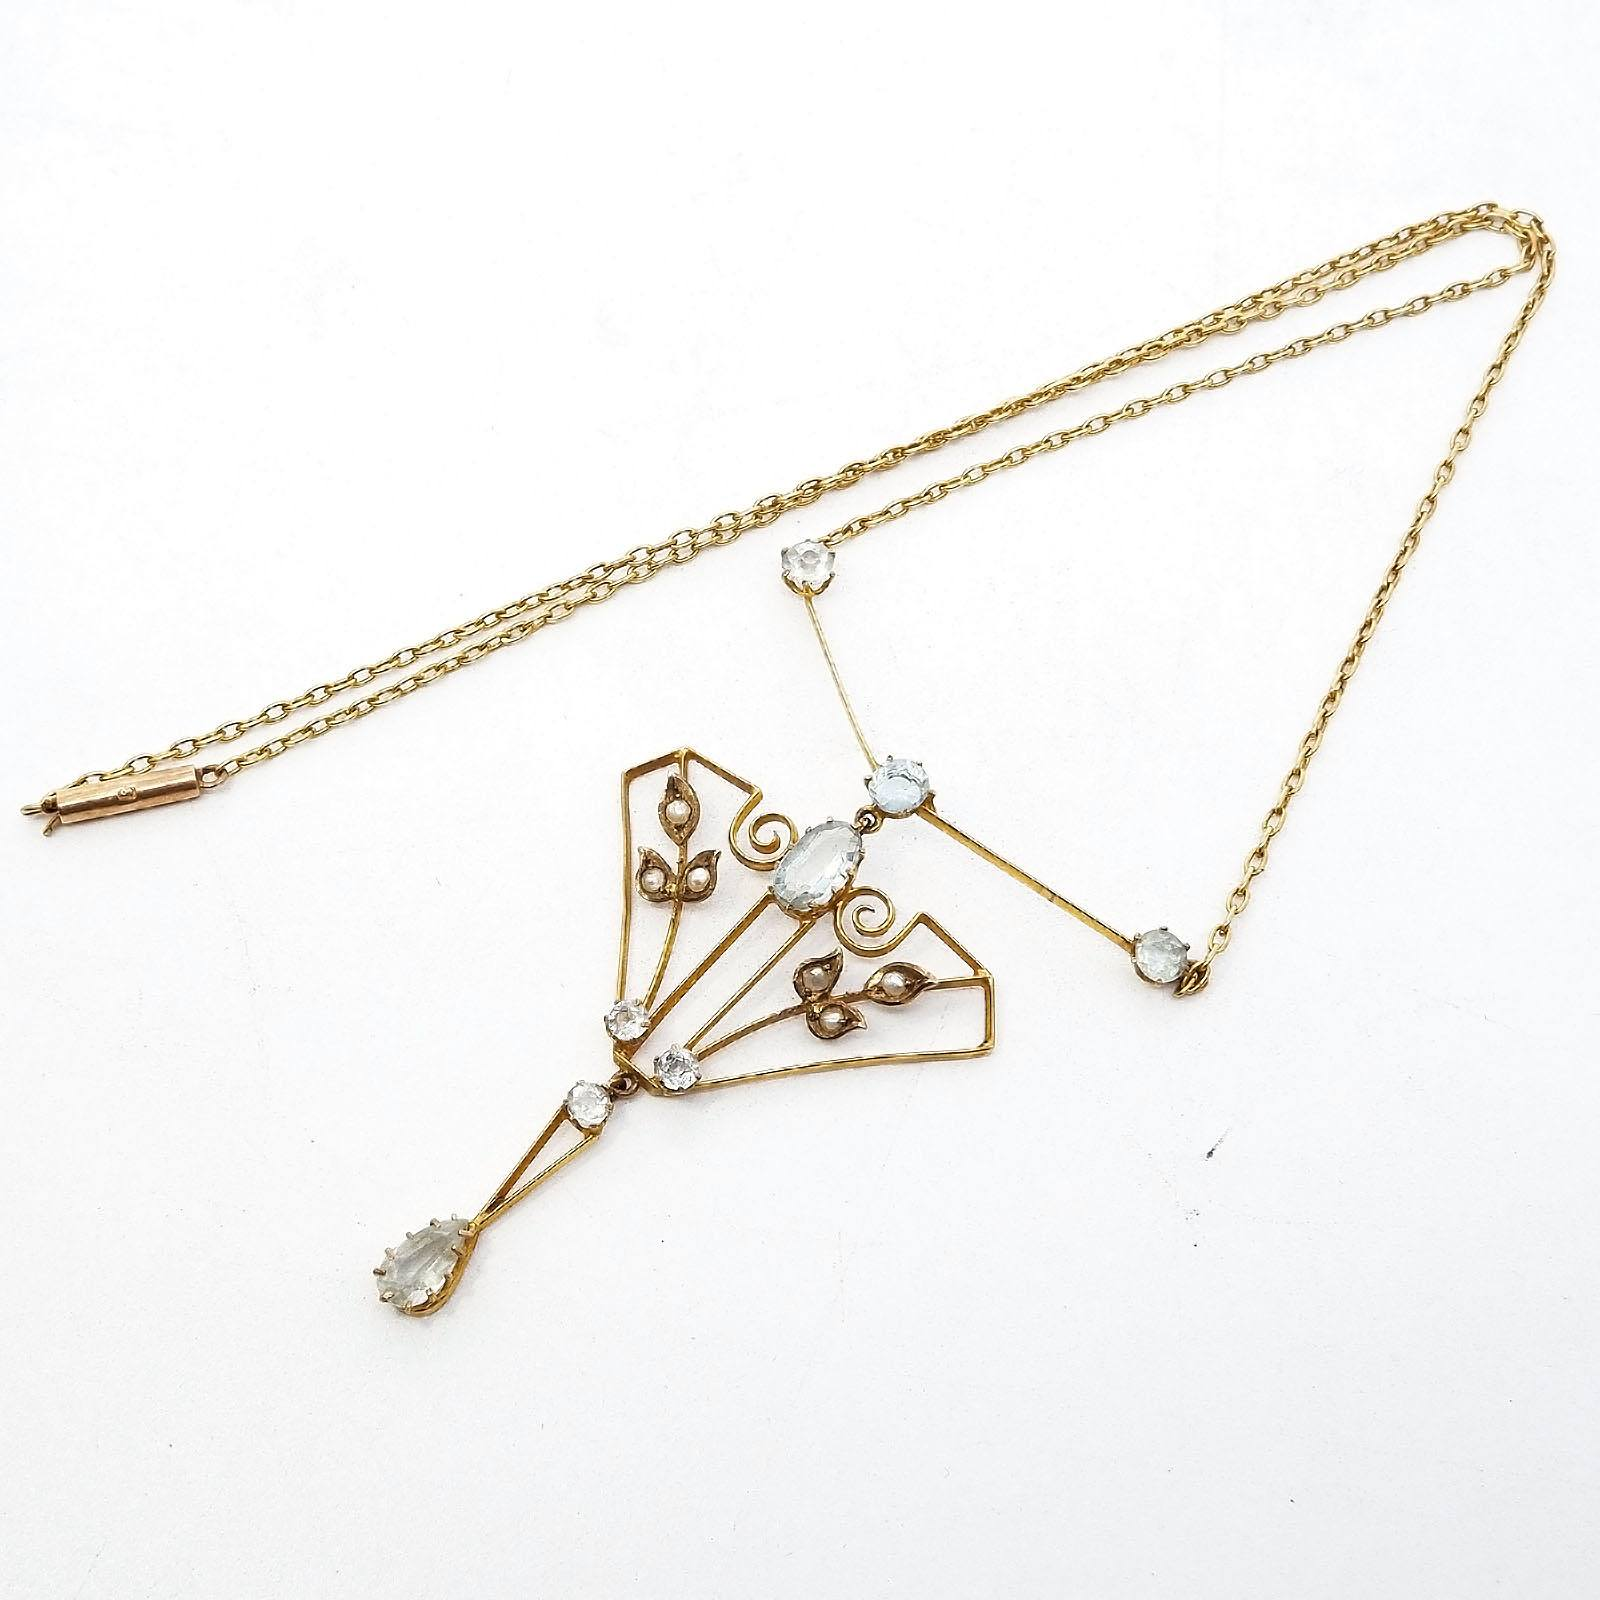 '9ct Yellow Gold Necklet with Centre Art Deco Pendant with Pale Blue Topaz and Half Seed Pearls in Claw Setting. 5.3g'